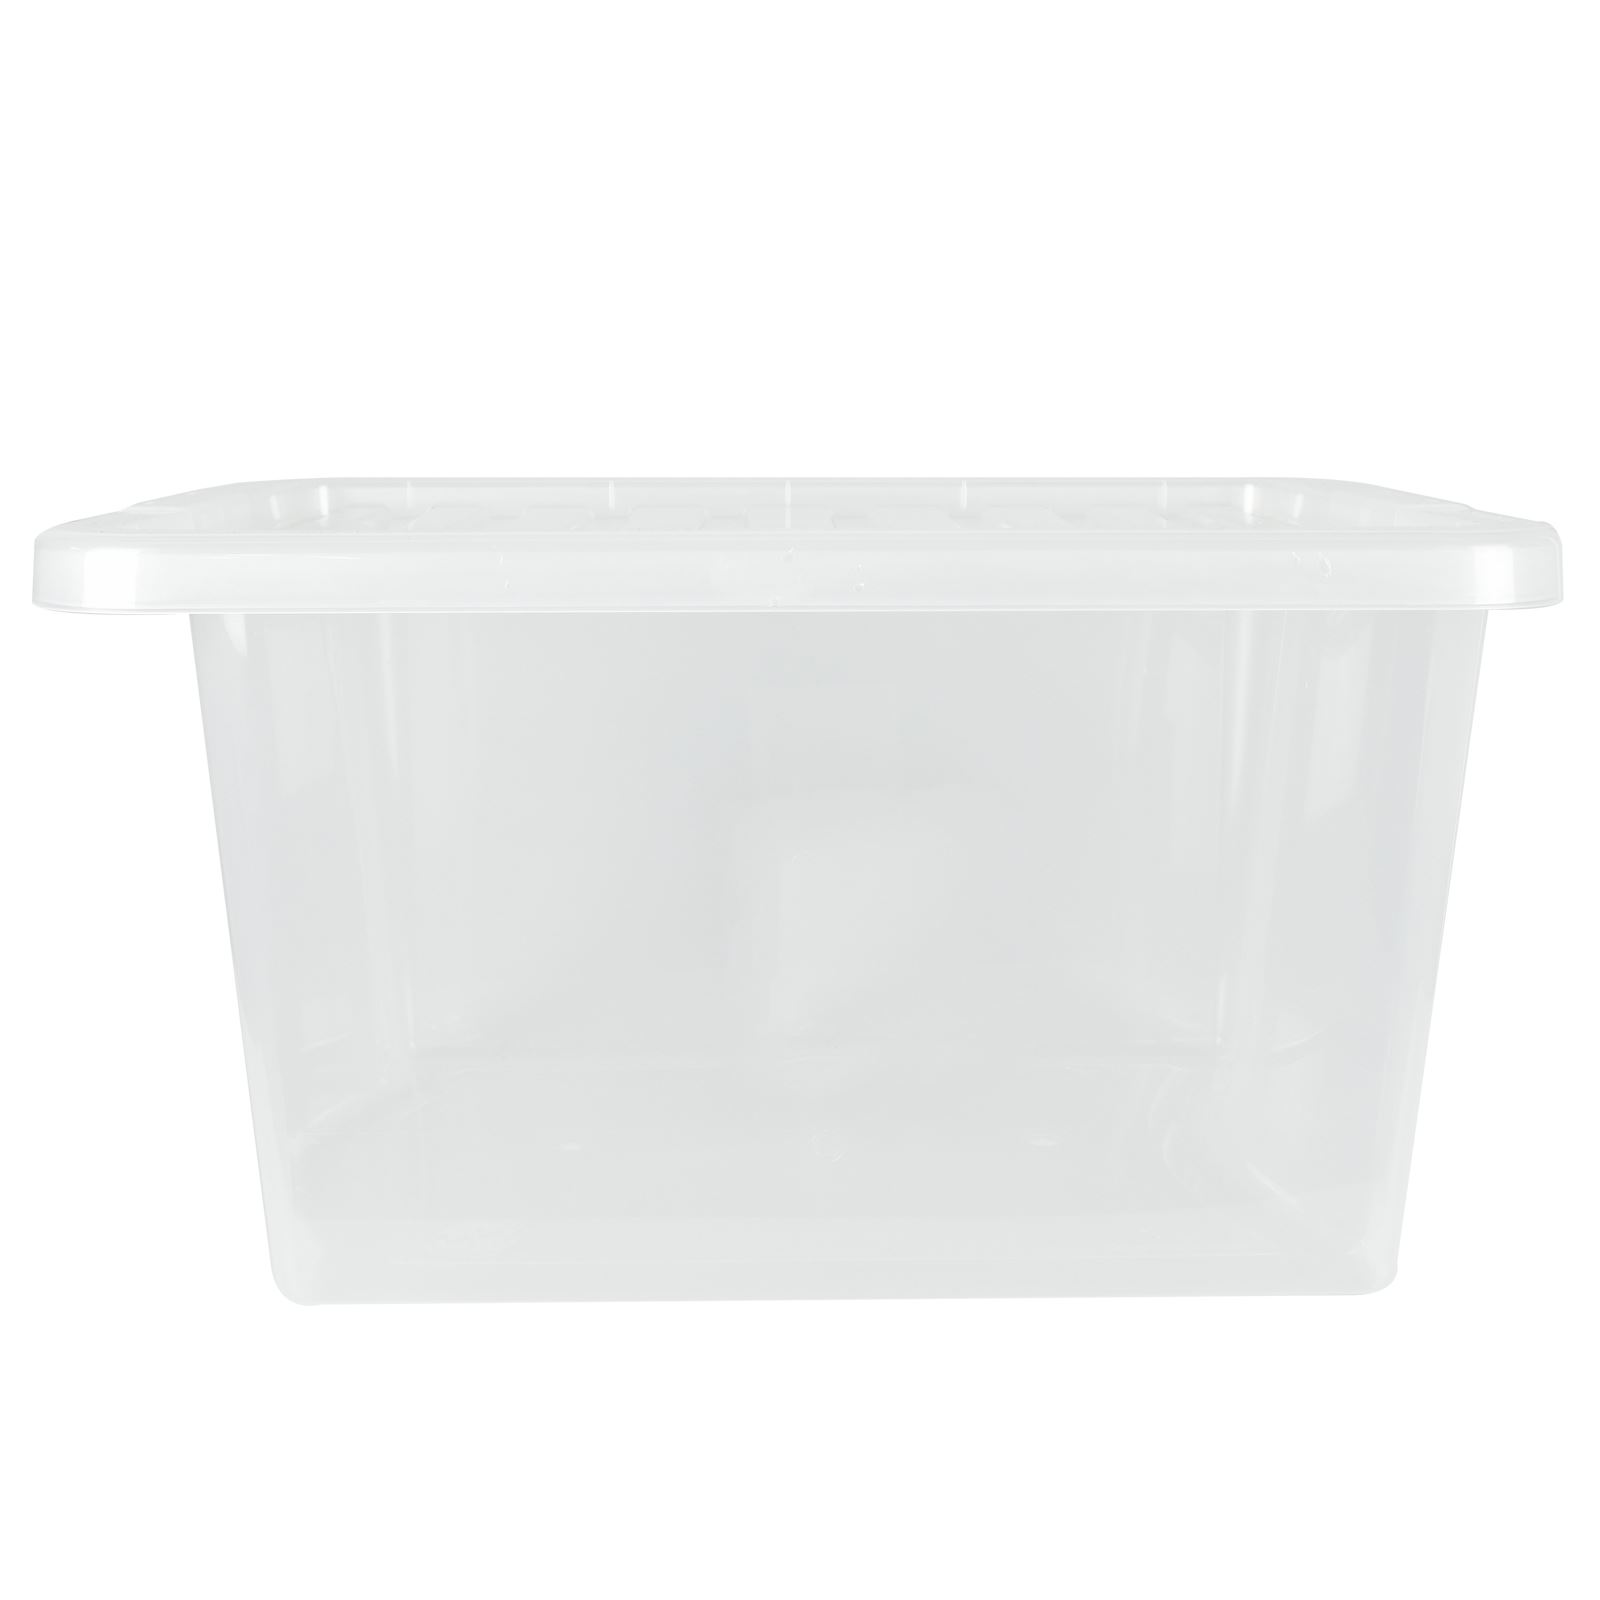 Wham-Crystal-Clear-Plastic-Storage-Box-Secure-Clip-on-Lid-Under-Bed-Space-Save thumbnail 33